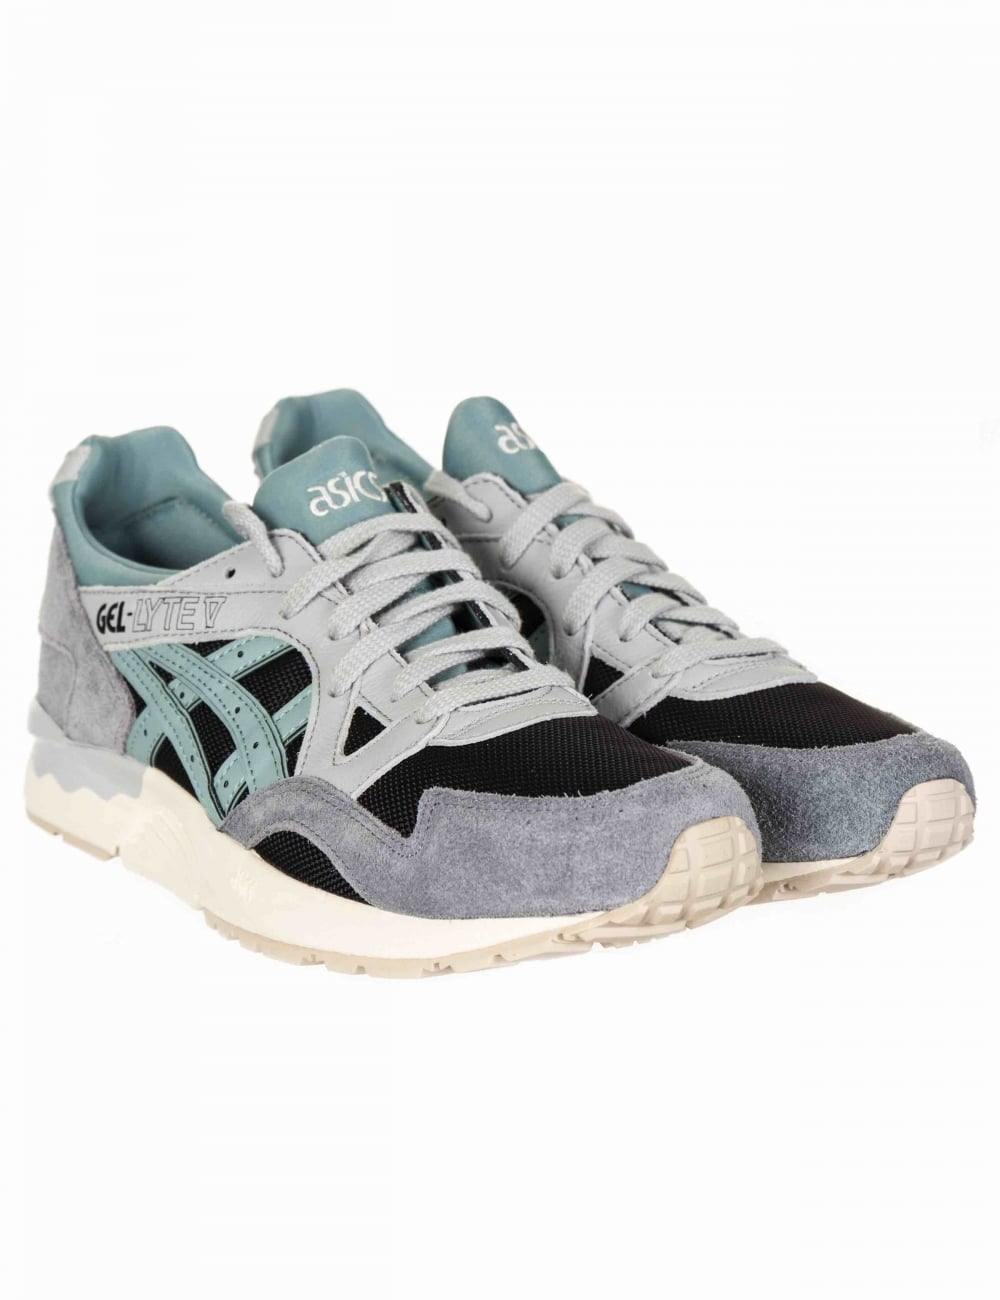 the latest c9014 c4e83 Gel Lyte V Trainers - Black/Blue Surf